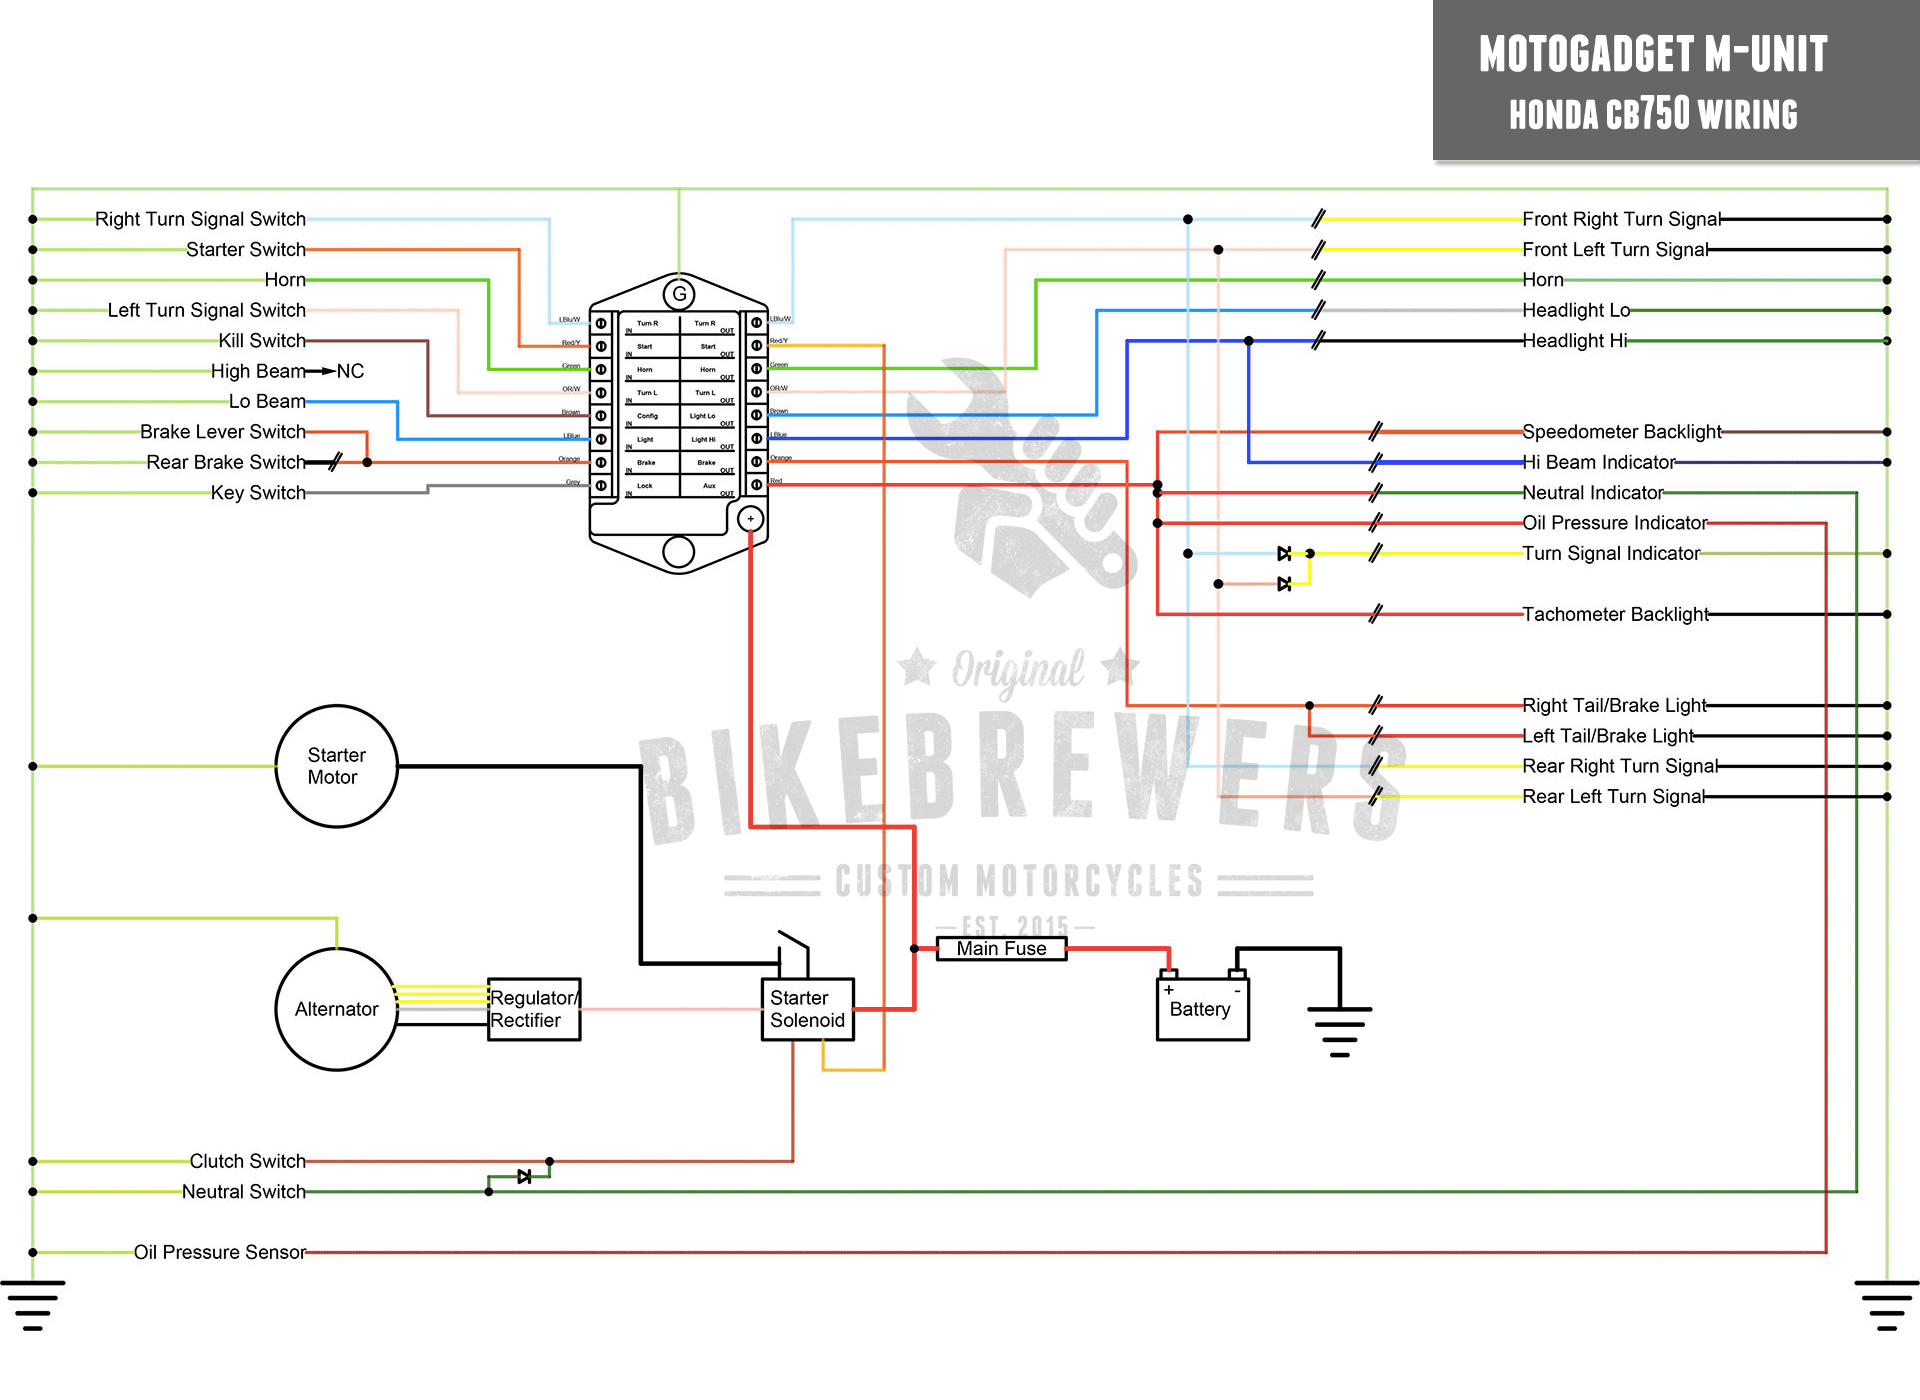 hight resolution of pm model 500 turn signal wiring diagram wiring library motogadget wiring honda cb750